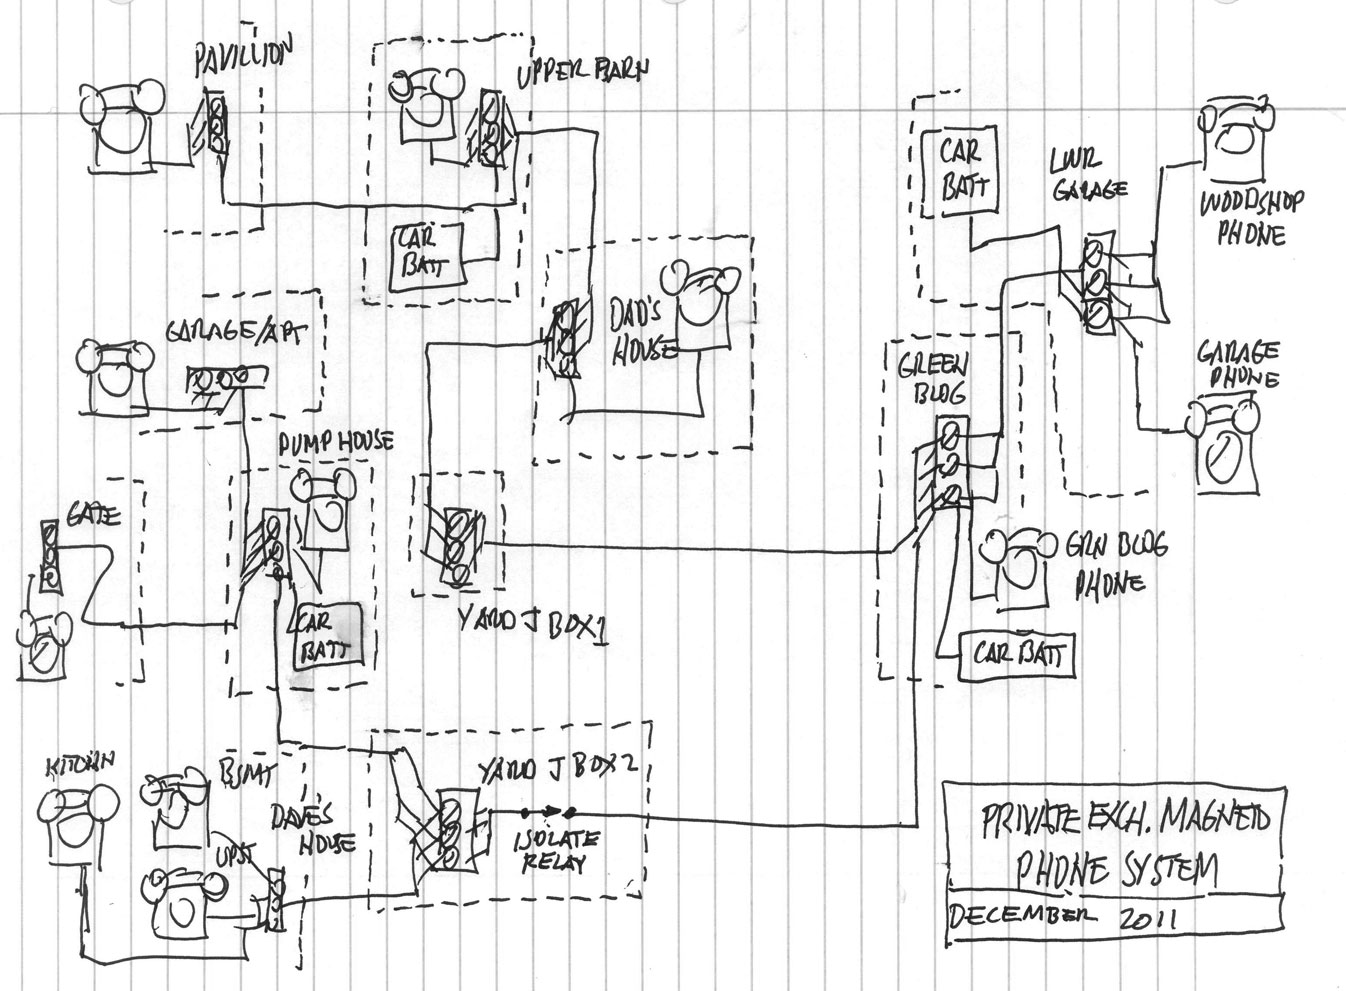 phonesysdiag leich phone Residential Telephone Wiring Diagram at bayanpartner.co